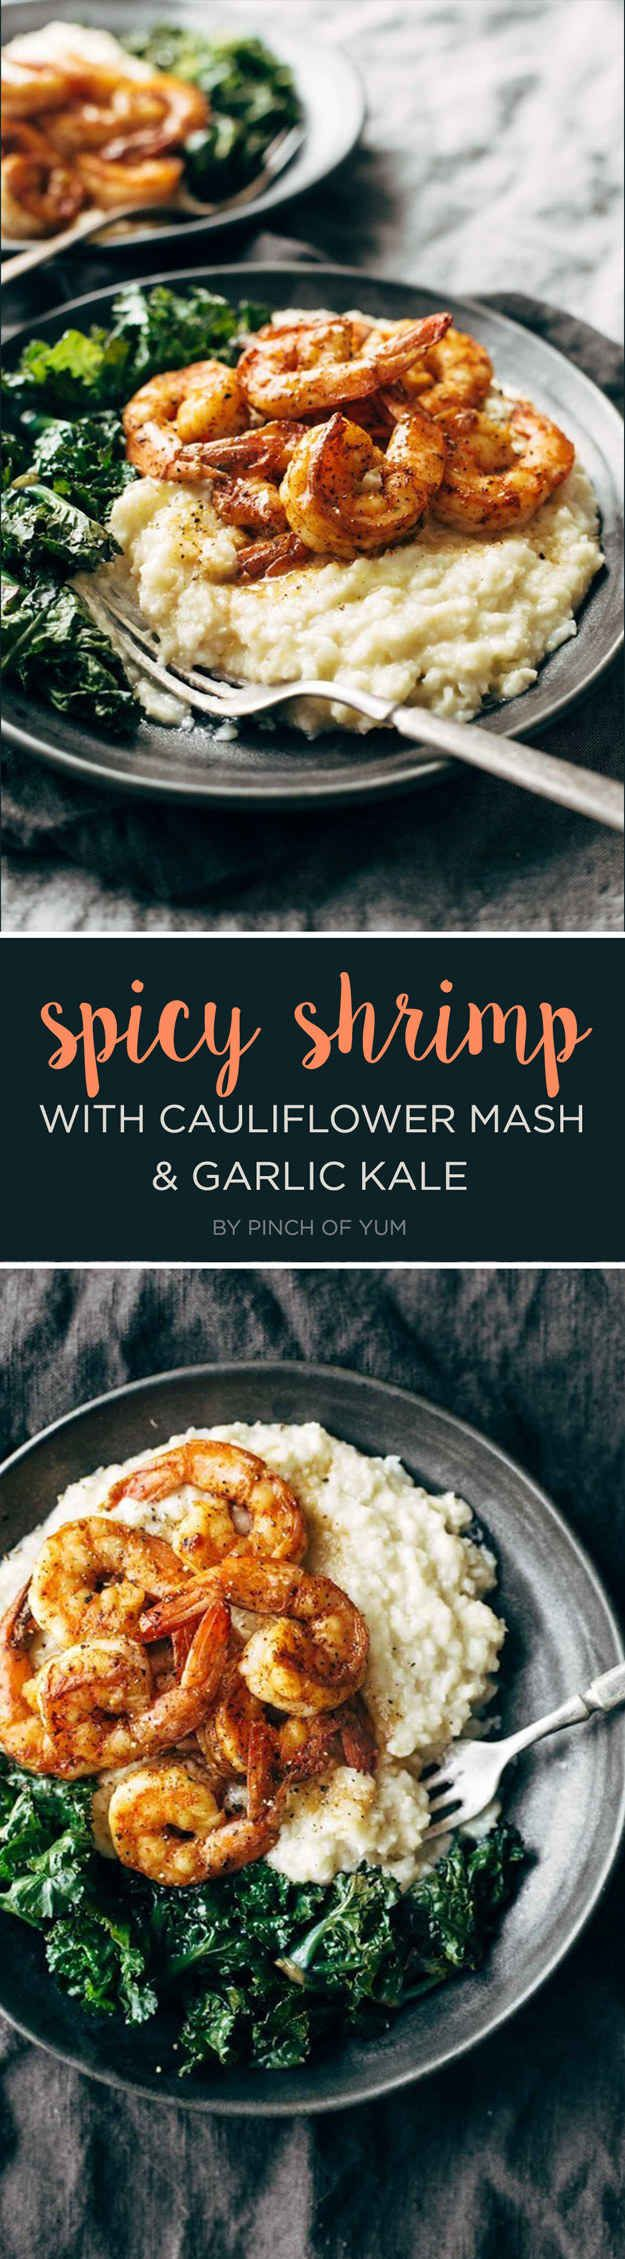 Spicy Shrimp with Cauliflower Mash and Garlic Kale and more easy recipes